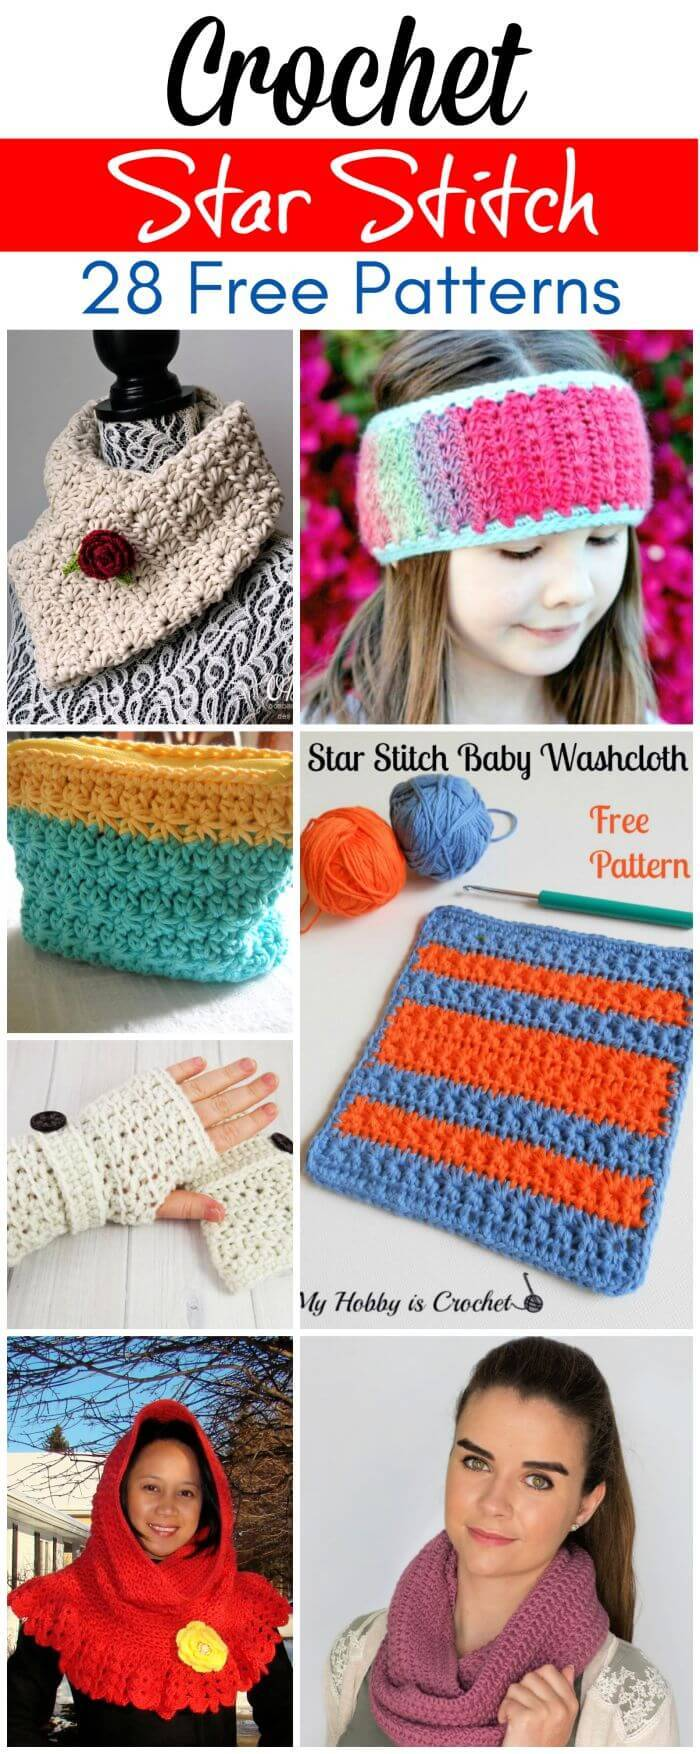 28 Free Crochet Star Stitch Patterns, Crochet Star Patterns, Crochet Stitches, Free Crochet Patterns, DIY Crafts